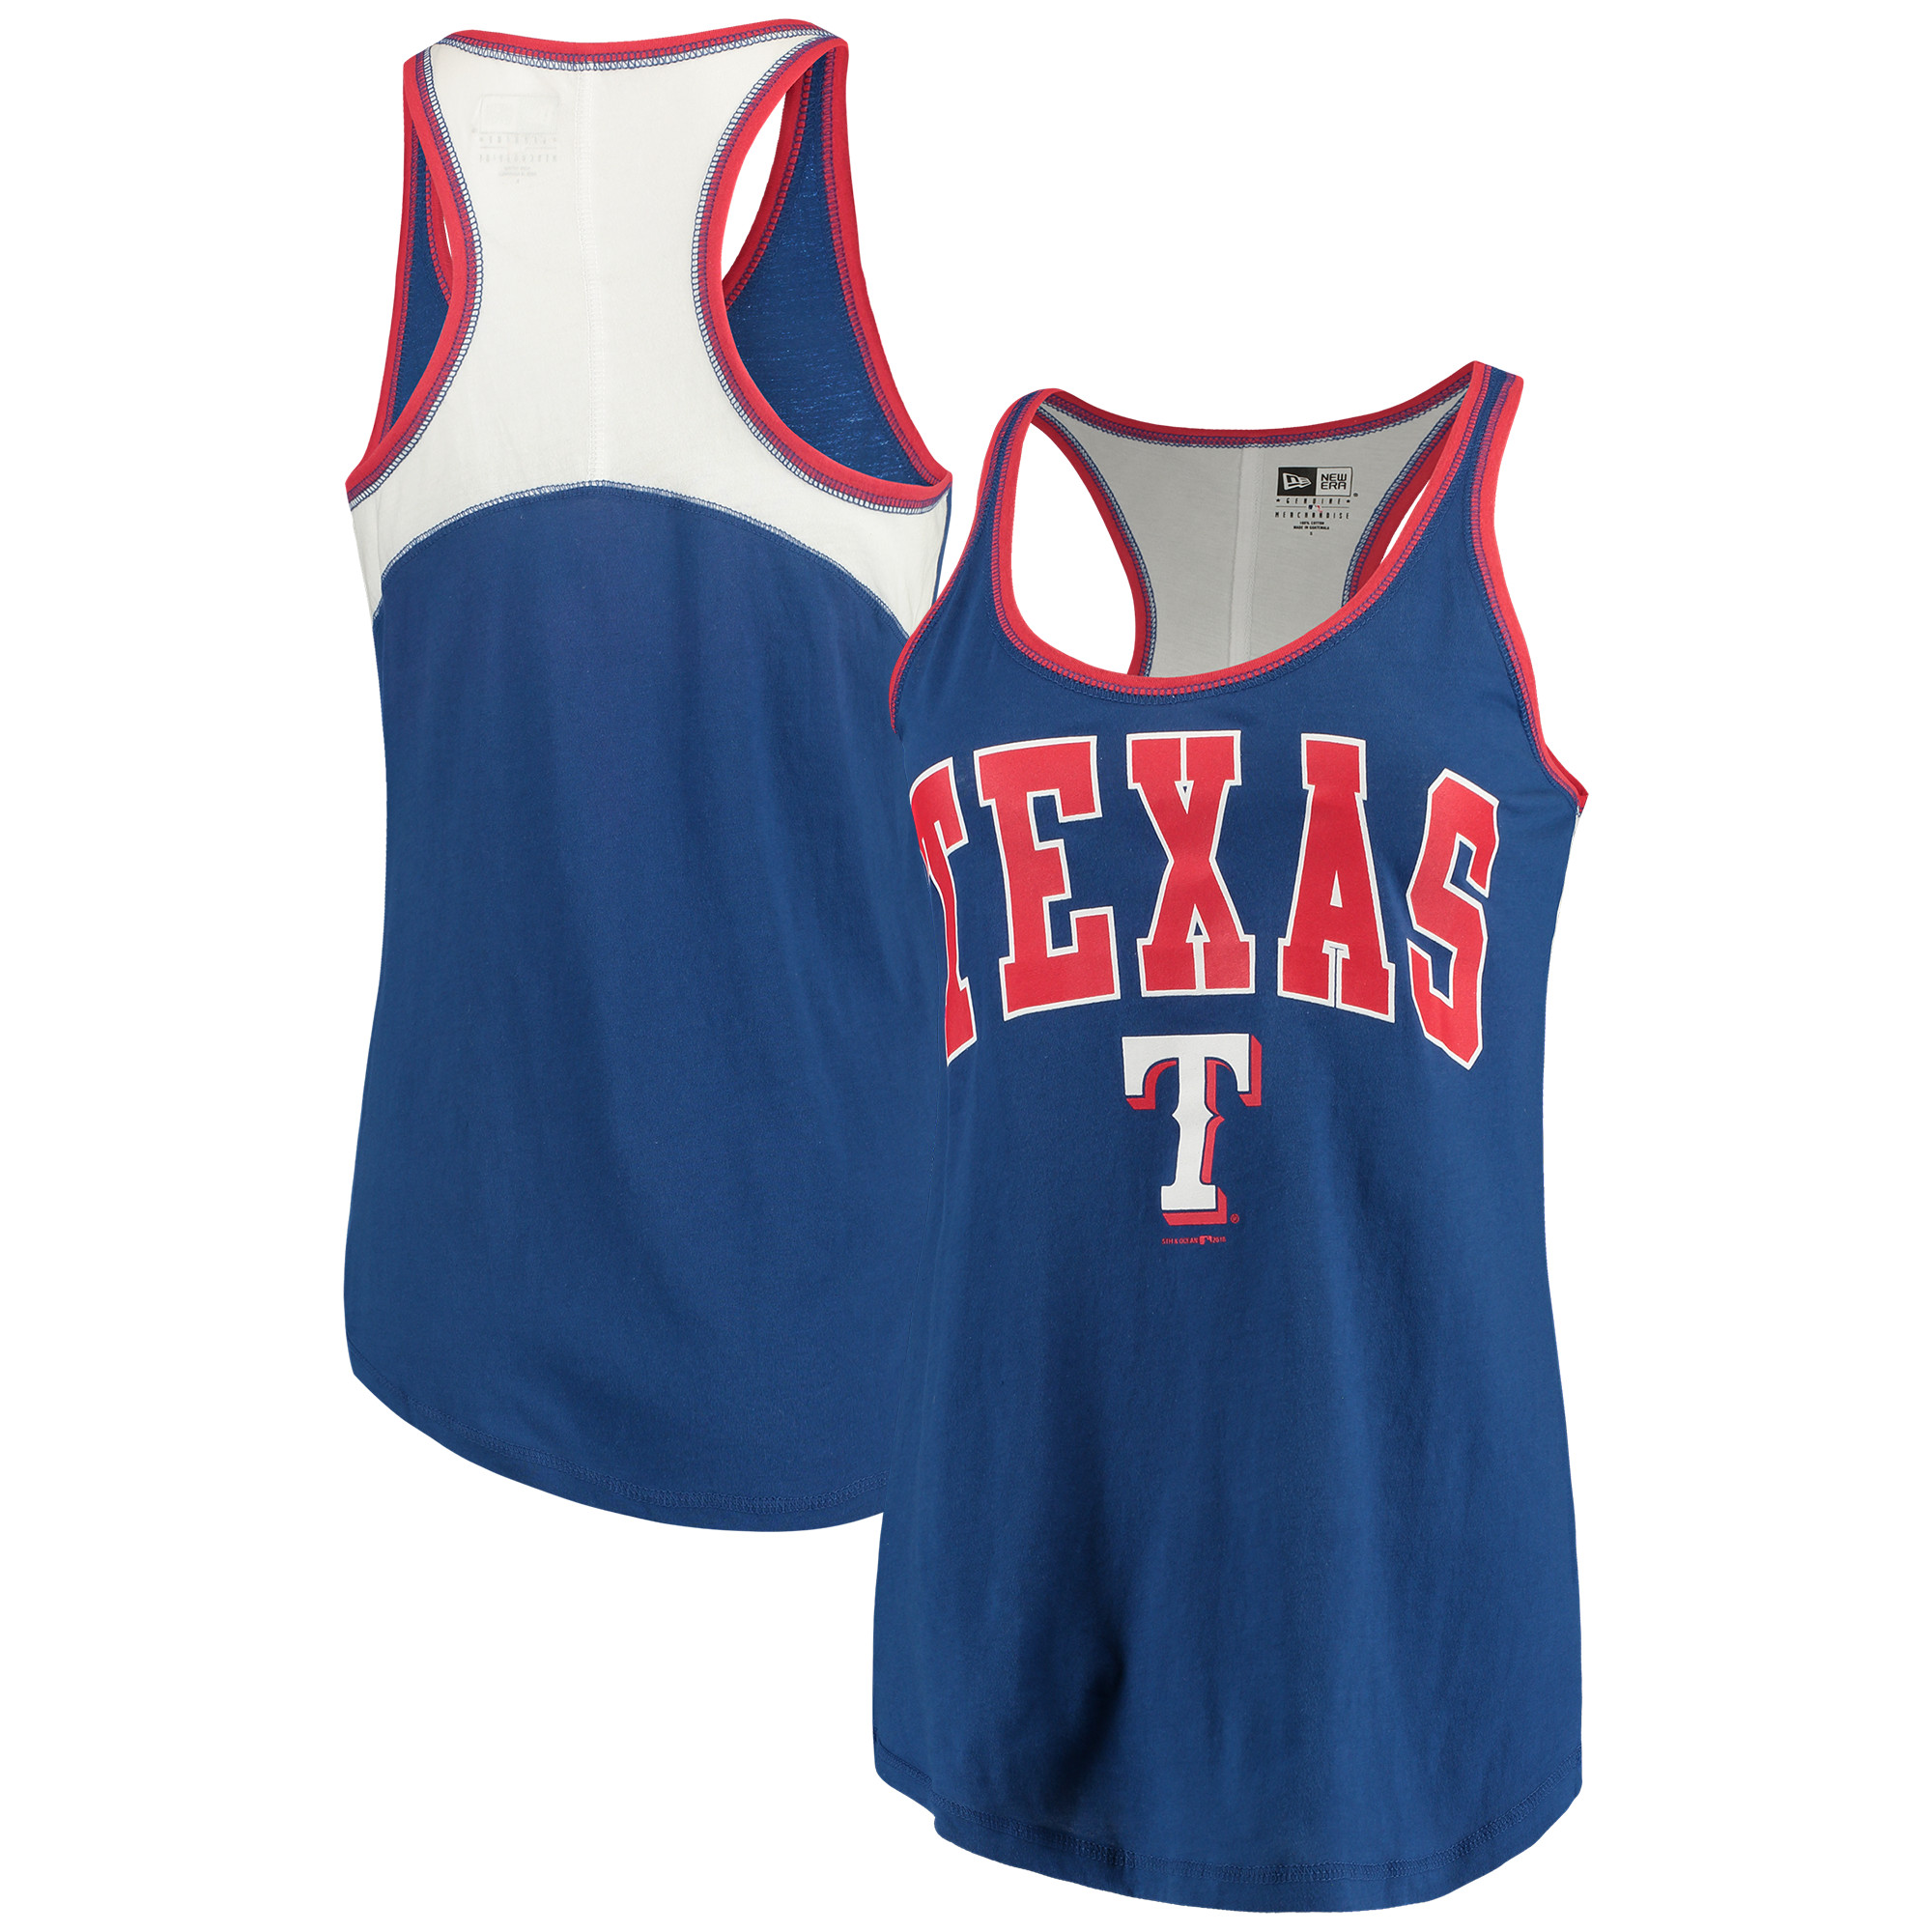 Texas Rangers 5th & Ocean by New Era Women's Baby Jersey Racerback Tank Top - Royal